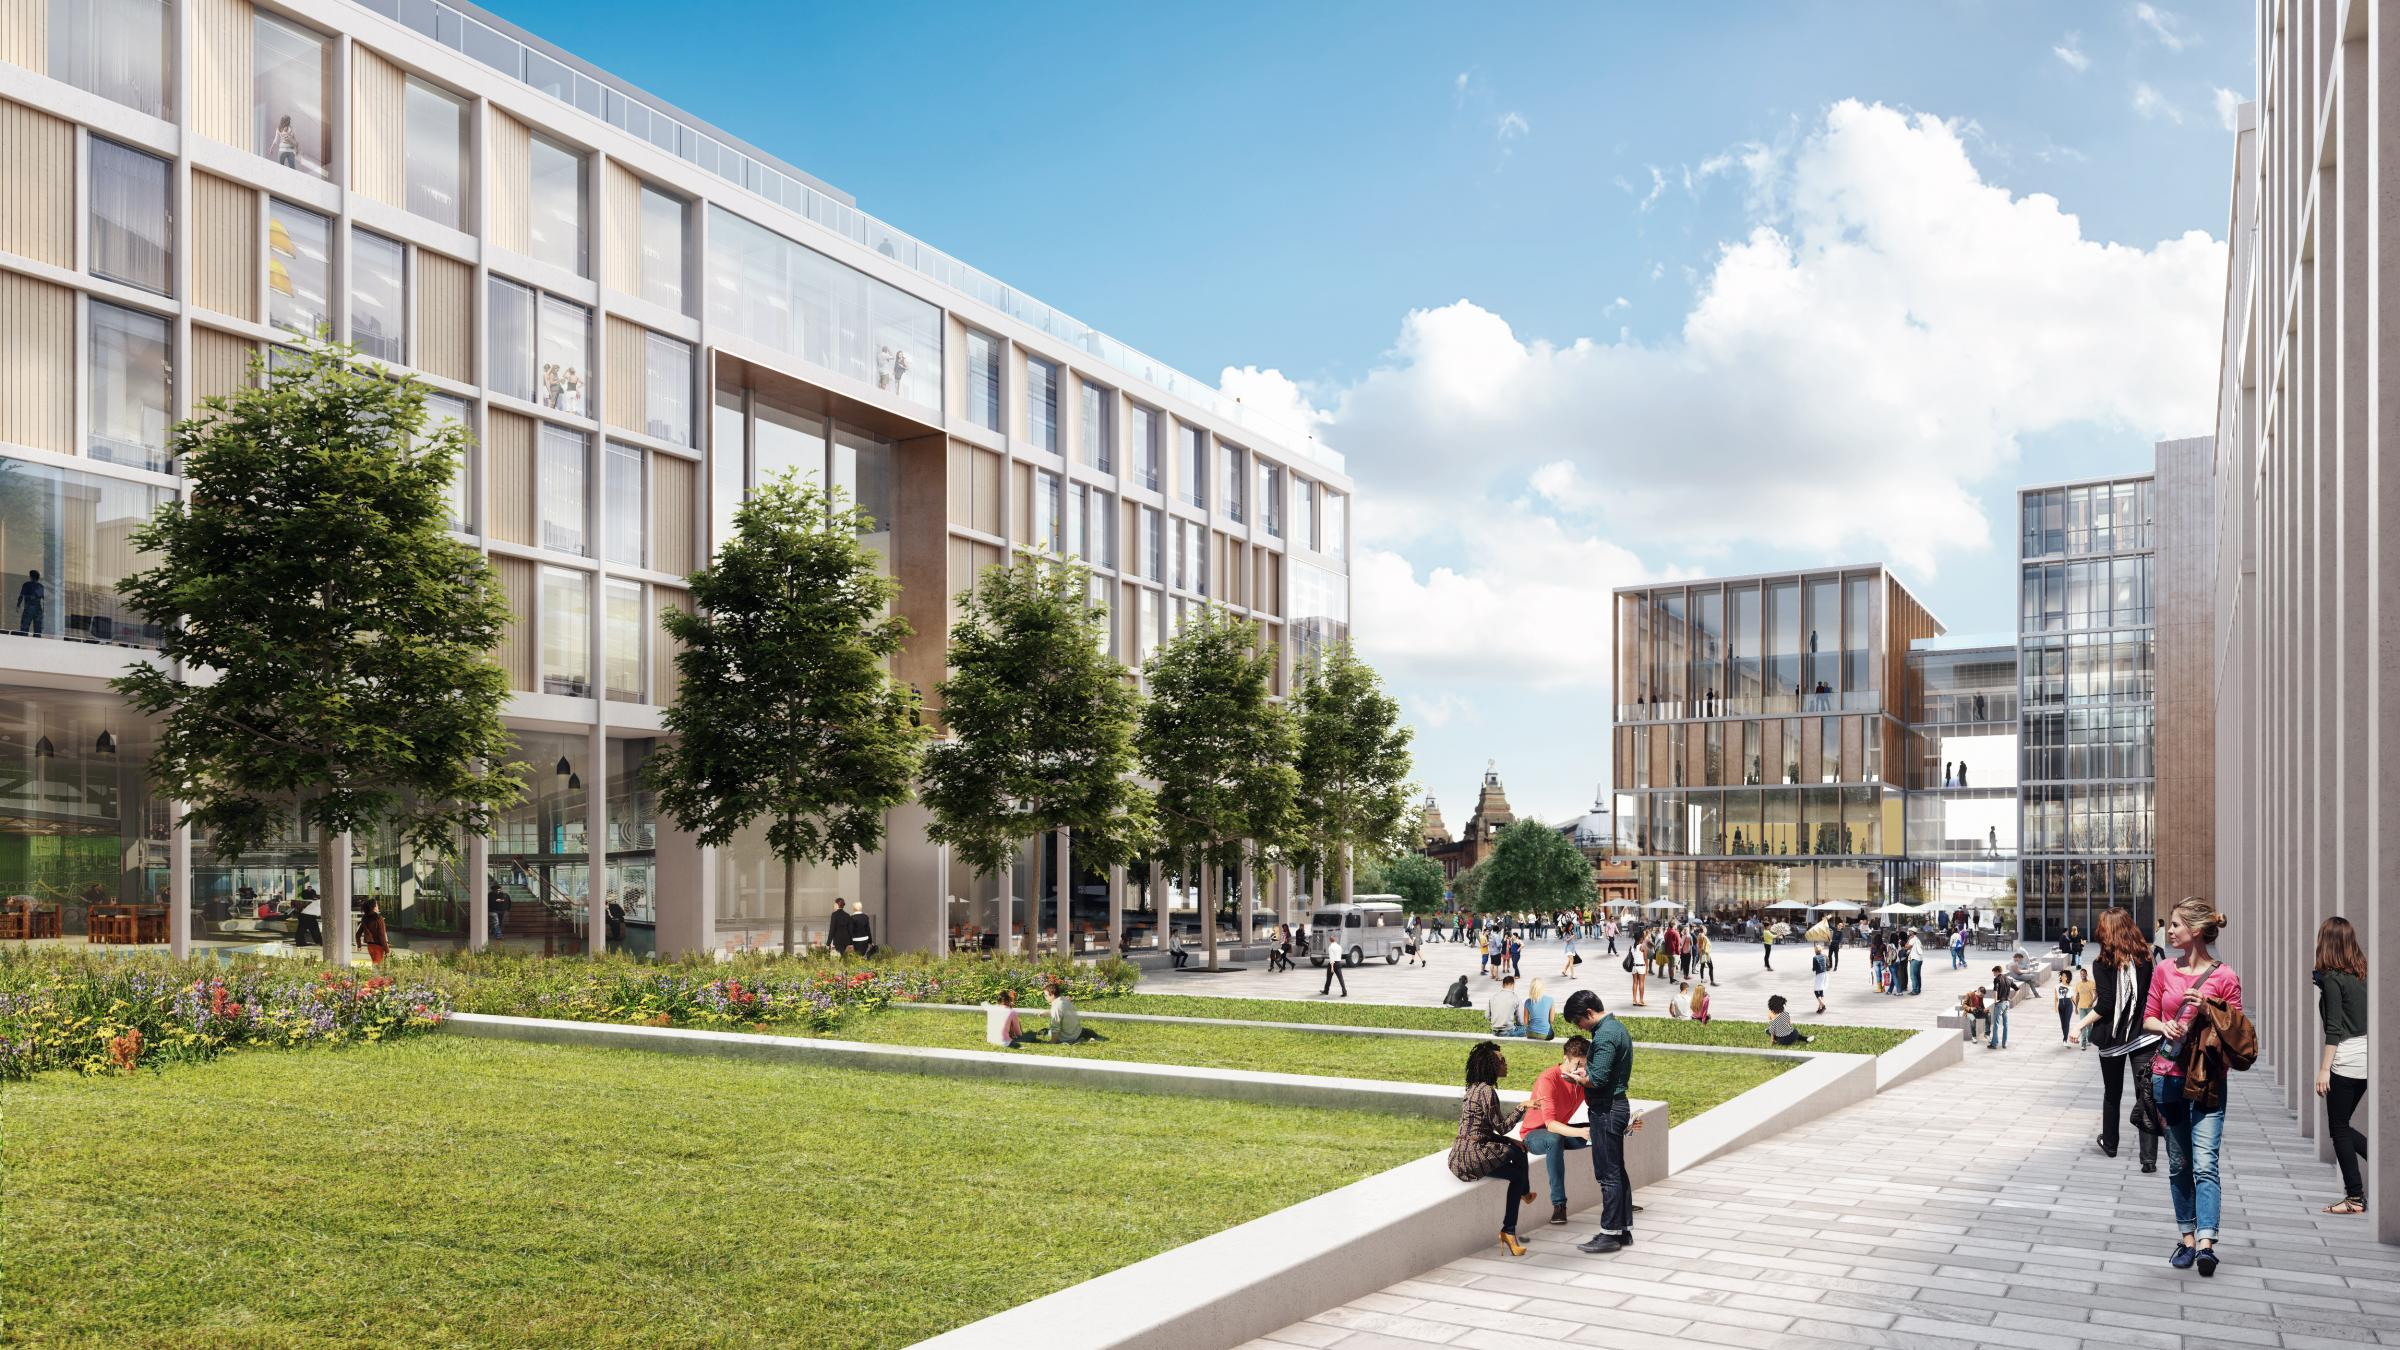 Artist's impression of the Glasgow University campus revamp